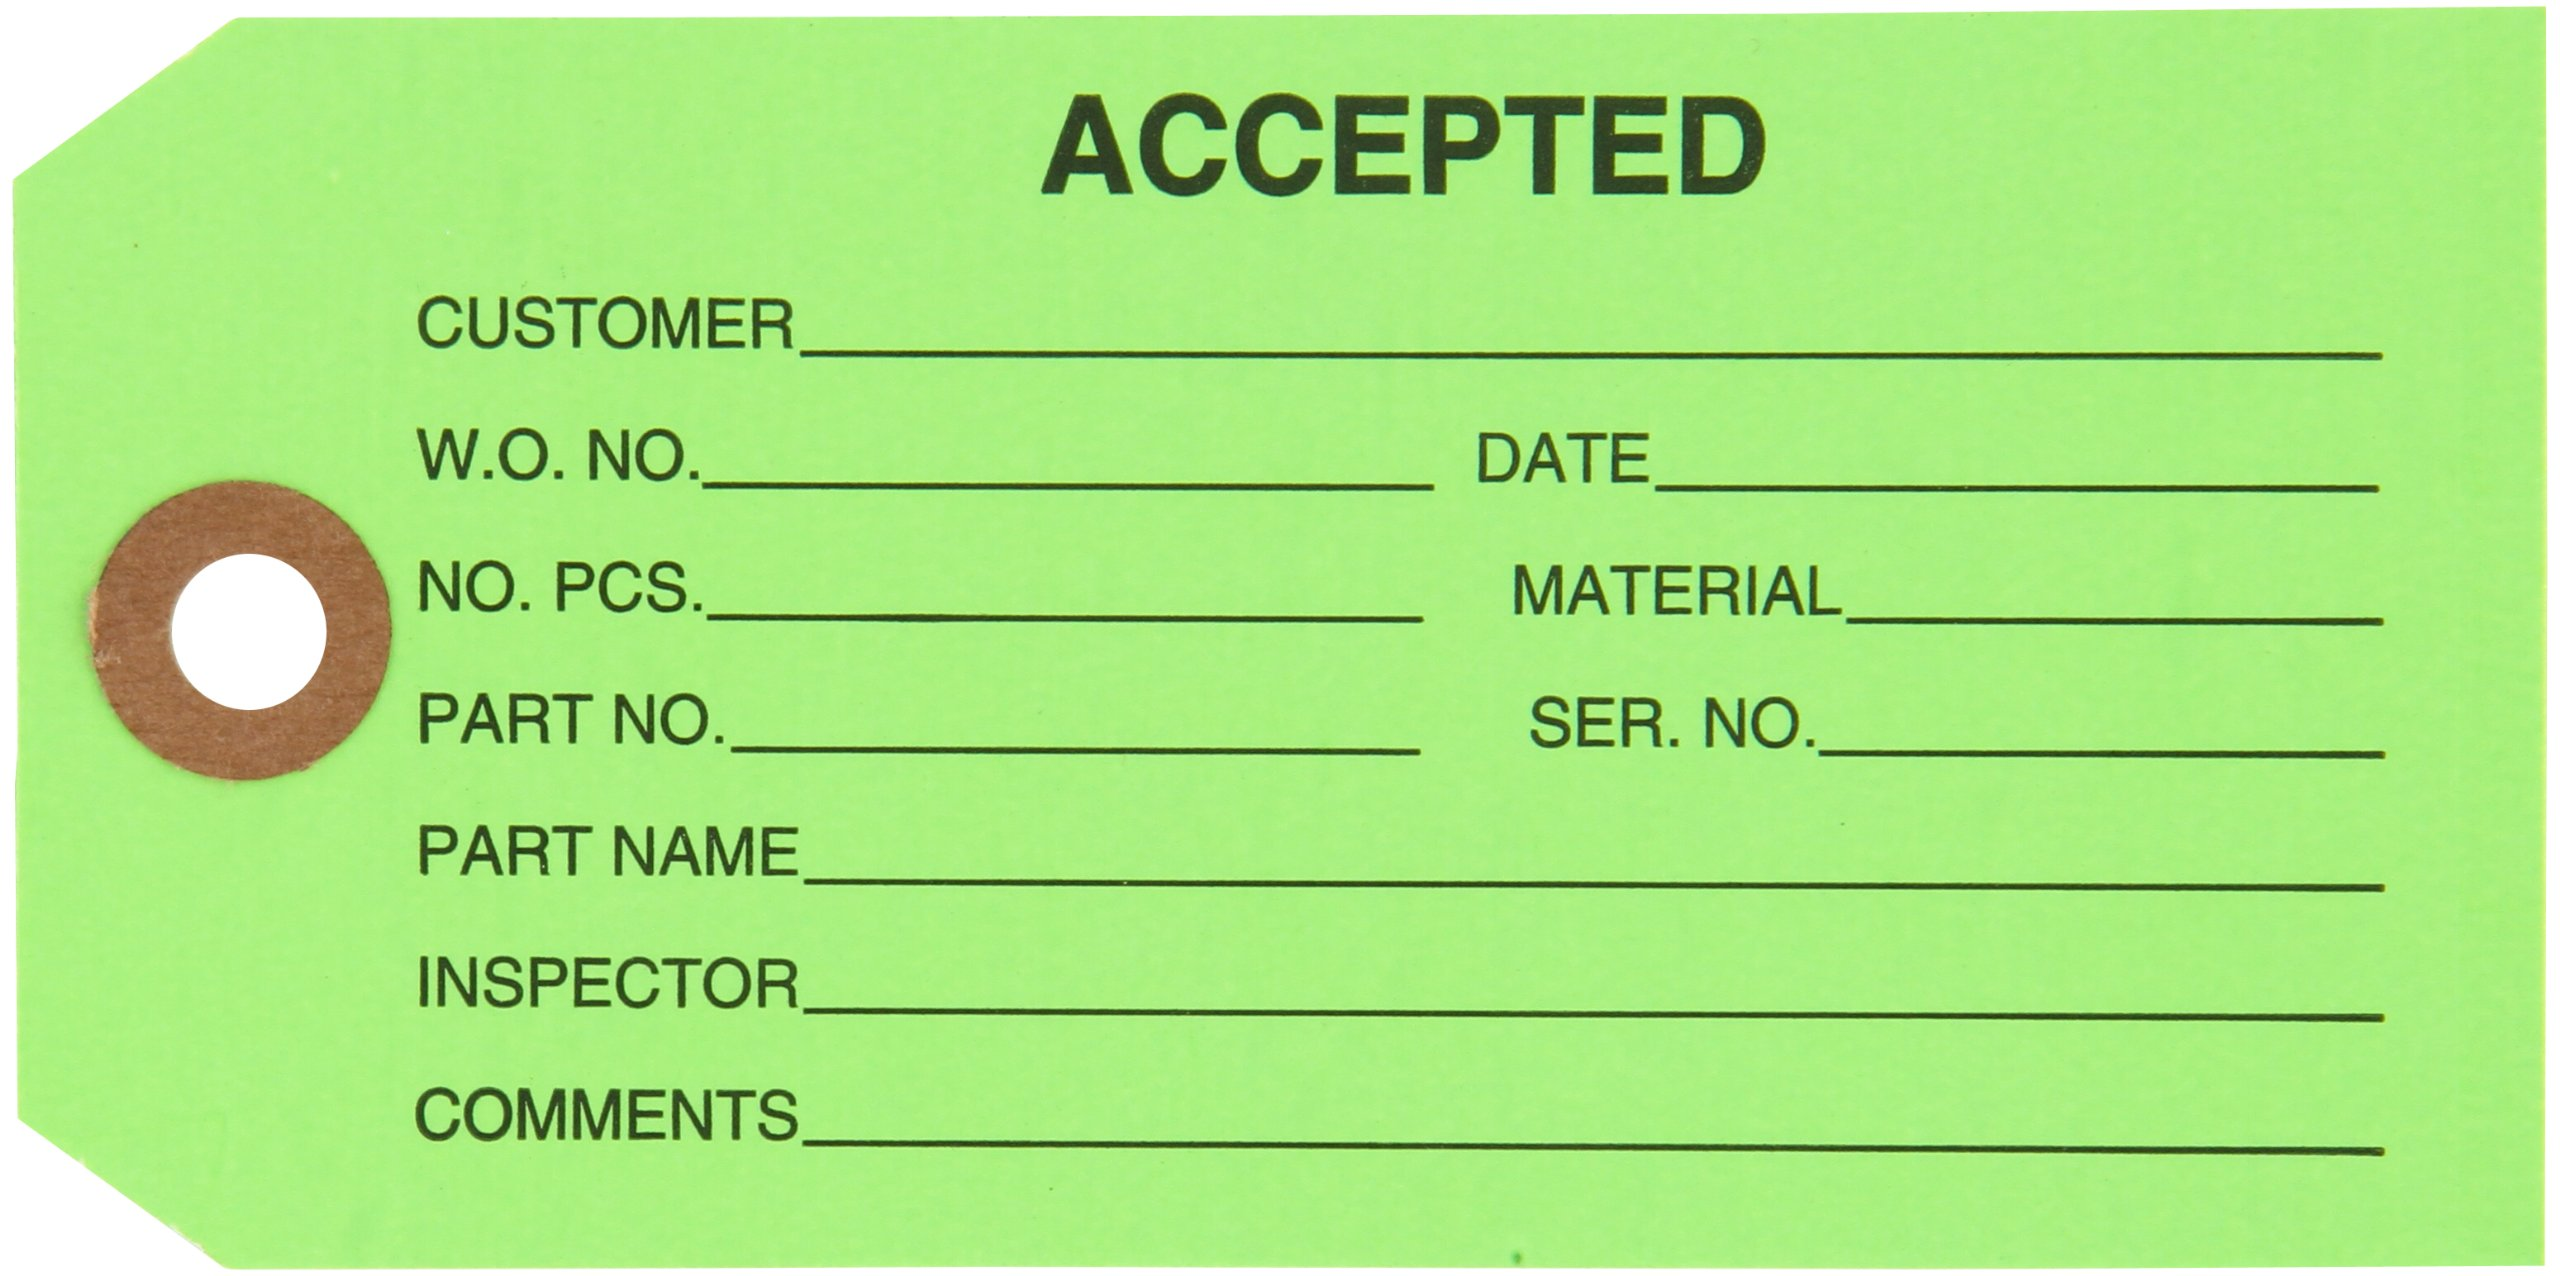 Aviditi Inspection Tag, Legend''ACCEPTED'', 13 Point Cardstock, 4-3/4'' H x 2-3/8'' W, Black on Green (G20021) by Aviditi